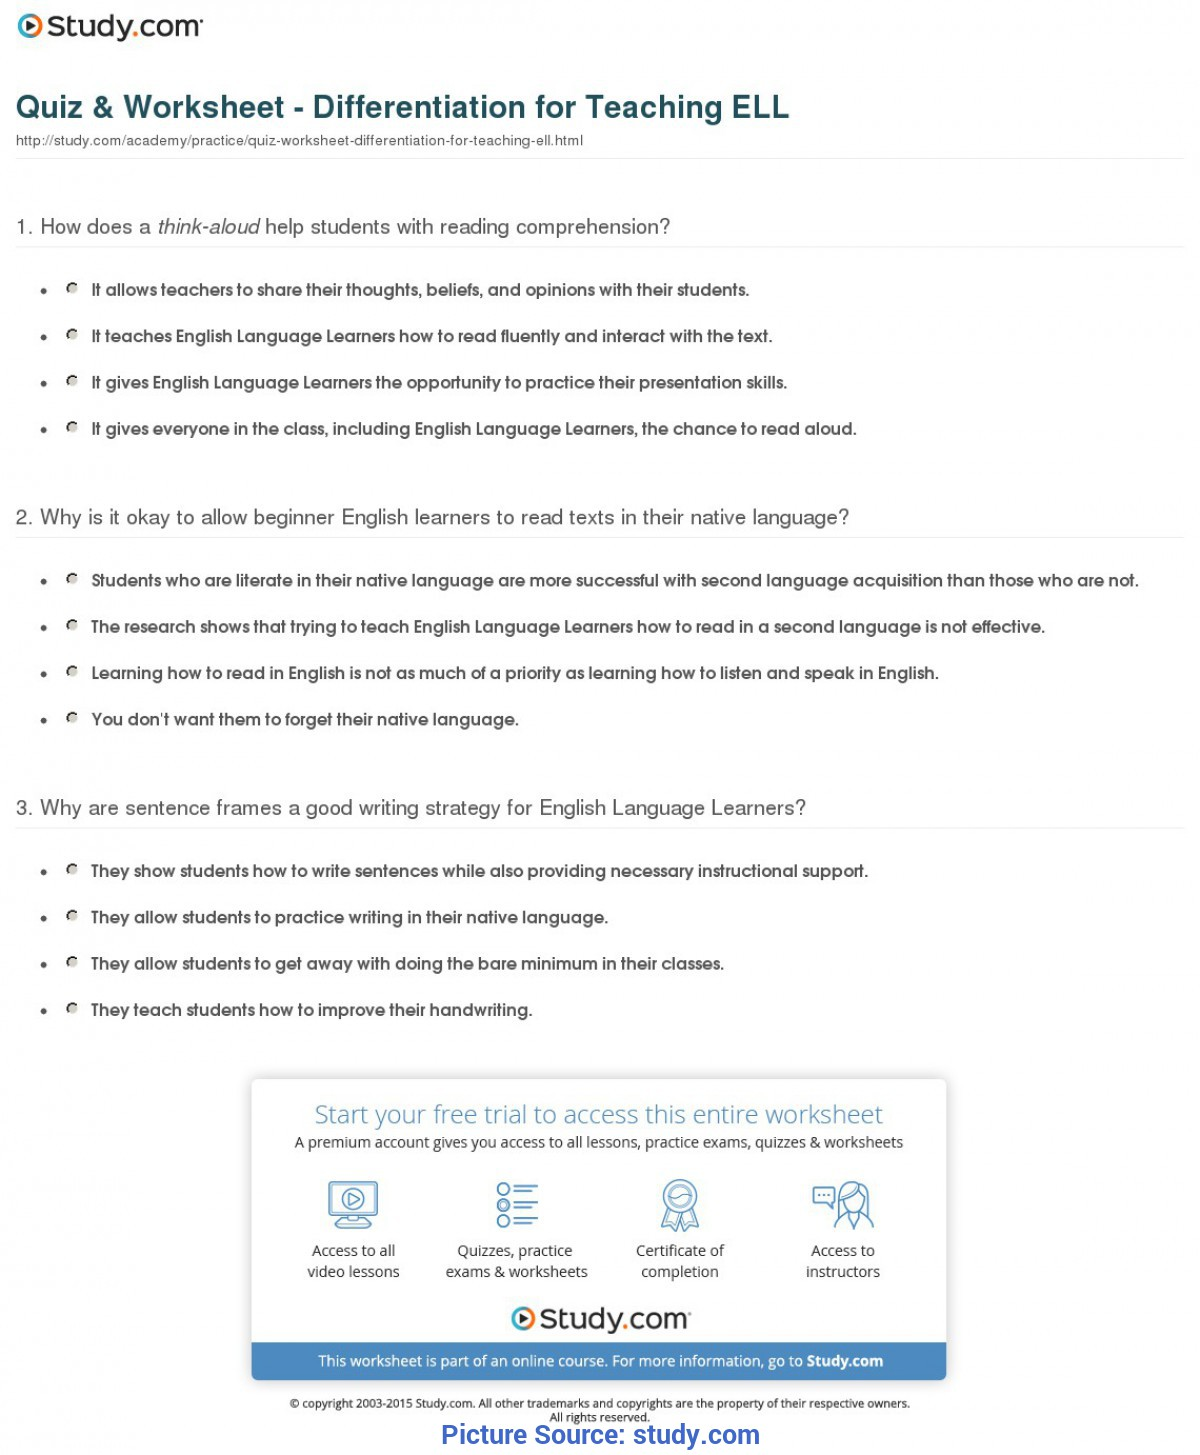 Complex Reading Lesson Plans For Intermediate Esl Students Quiz & Worksheet - Differentiation For Teaching Ell | Study